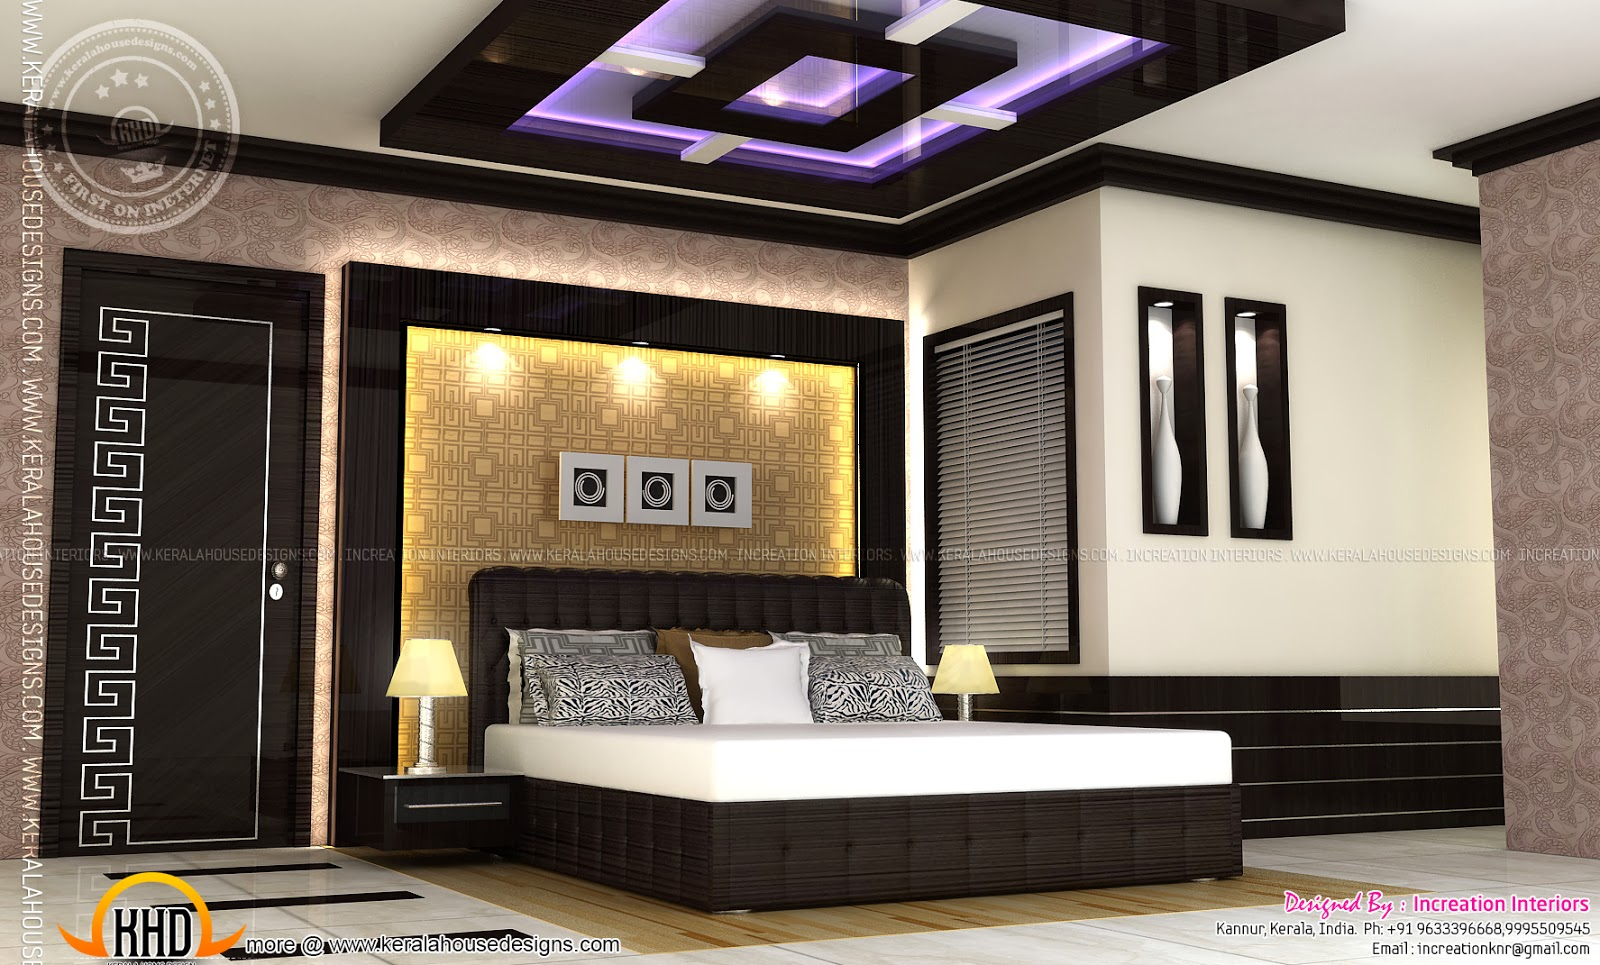 Kerala home design interior bedroom - Bedroom Interior Designs The Best Inspiration For Interiors Kerala House Interiors